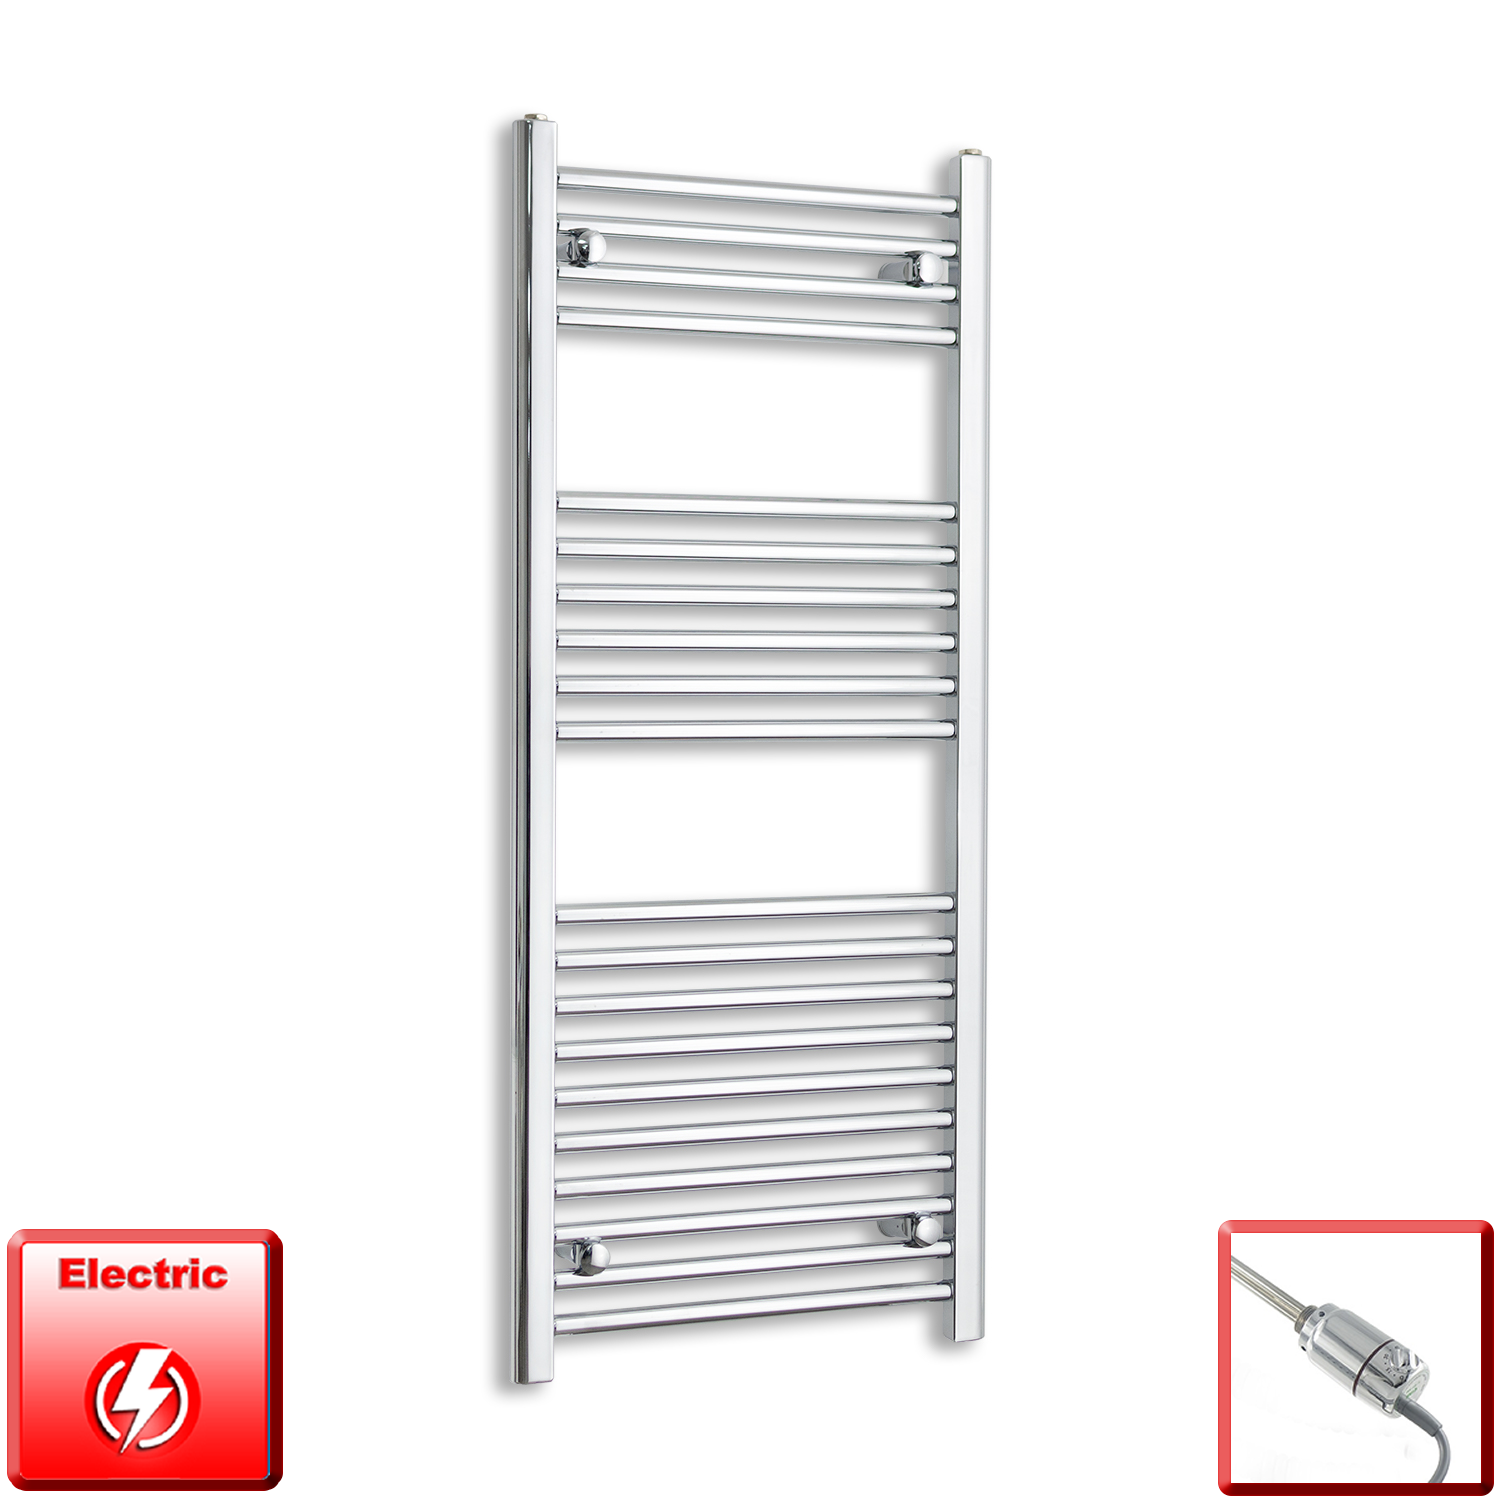 500mm Wide 1200mm High Flat or Curved Chrome Pre-Filled Electric Heated Towel Rail Radiator HTR,GT Thermostatic